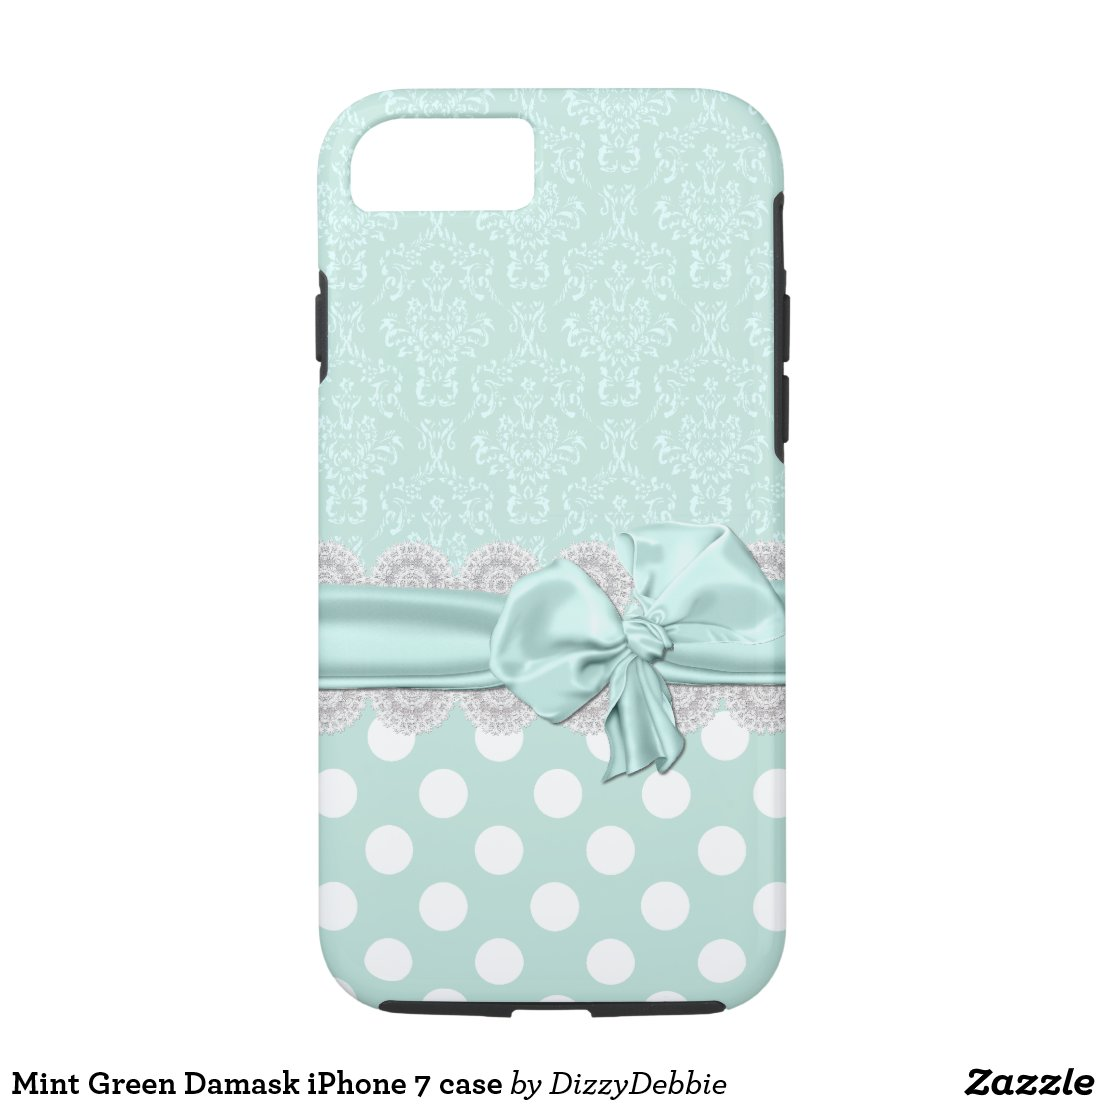 Mint Green Damask iPhone 7 case